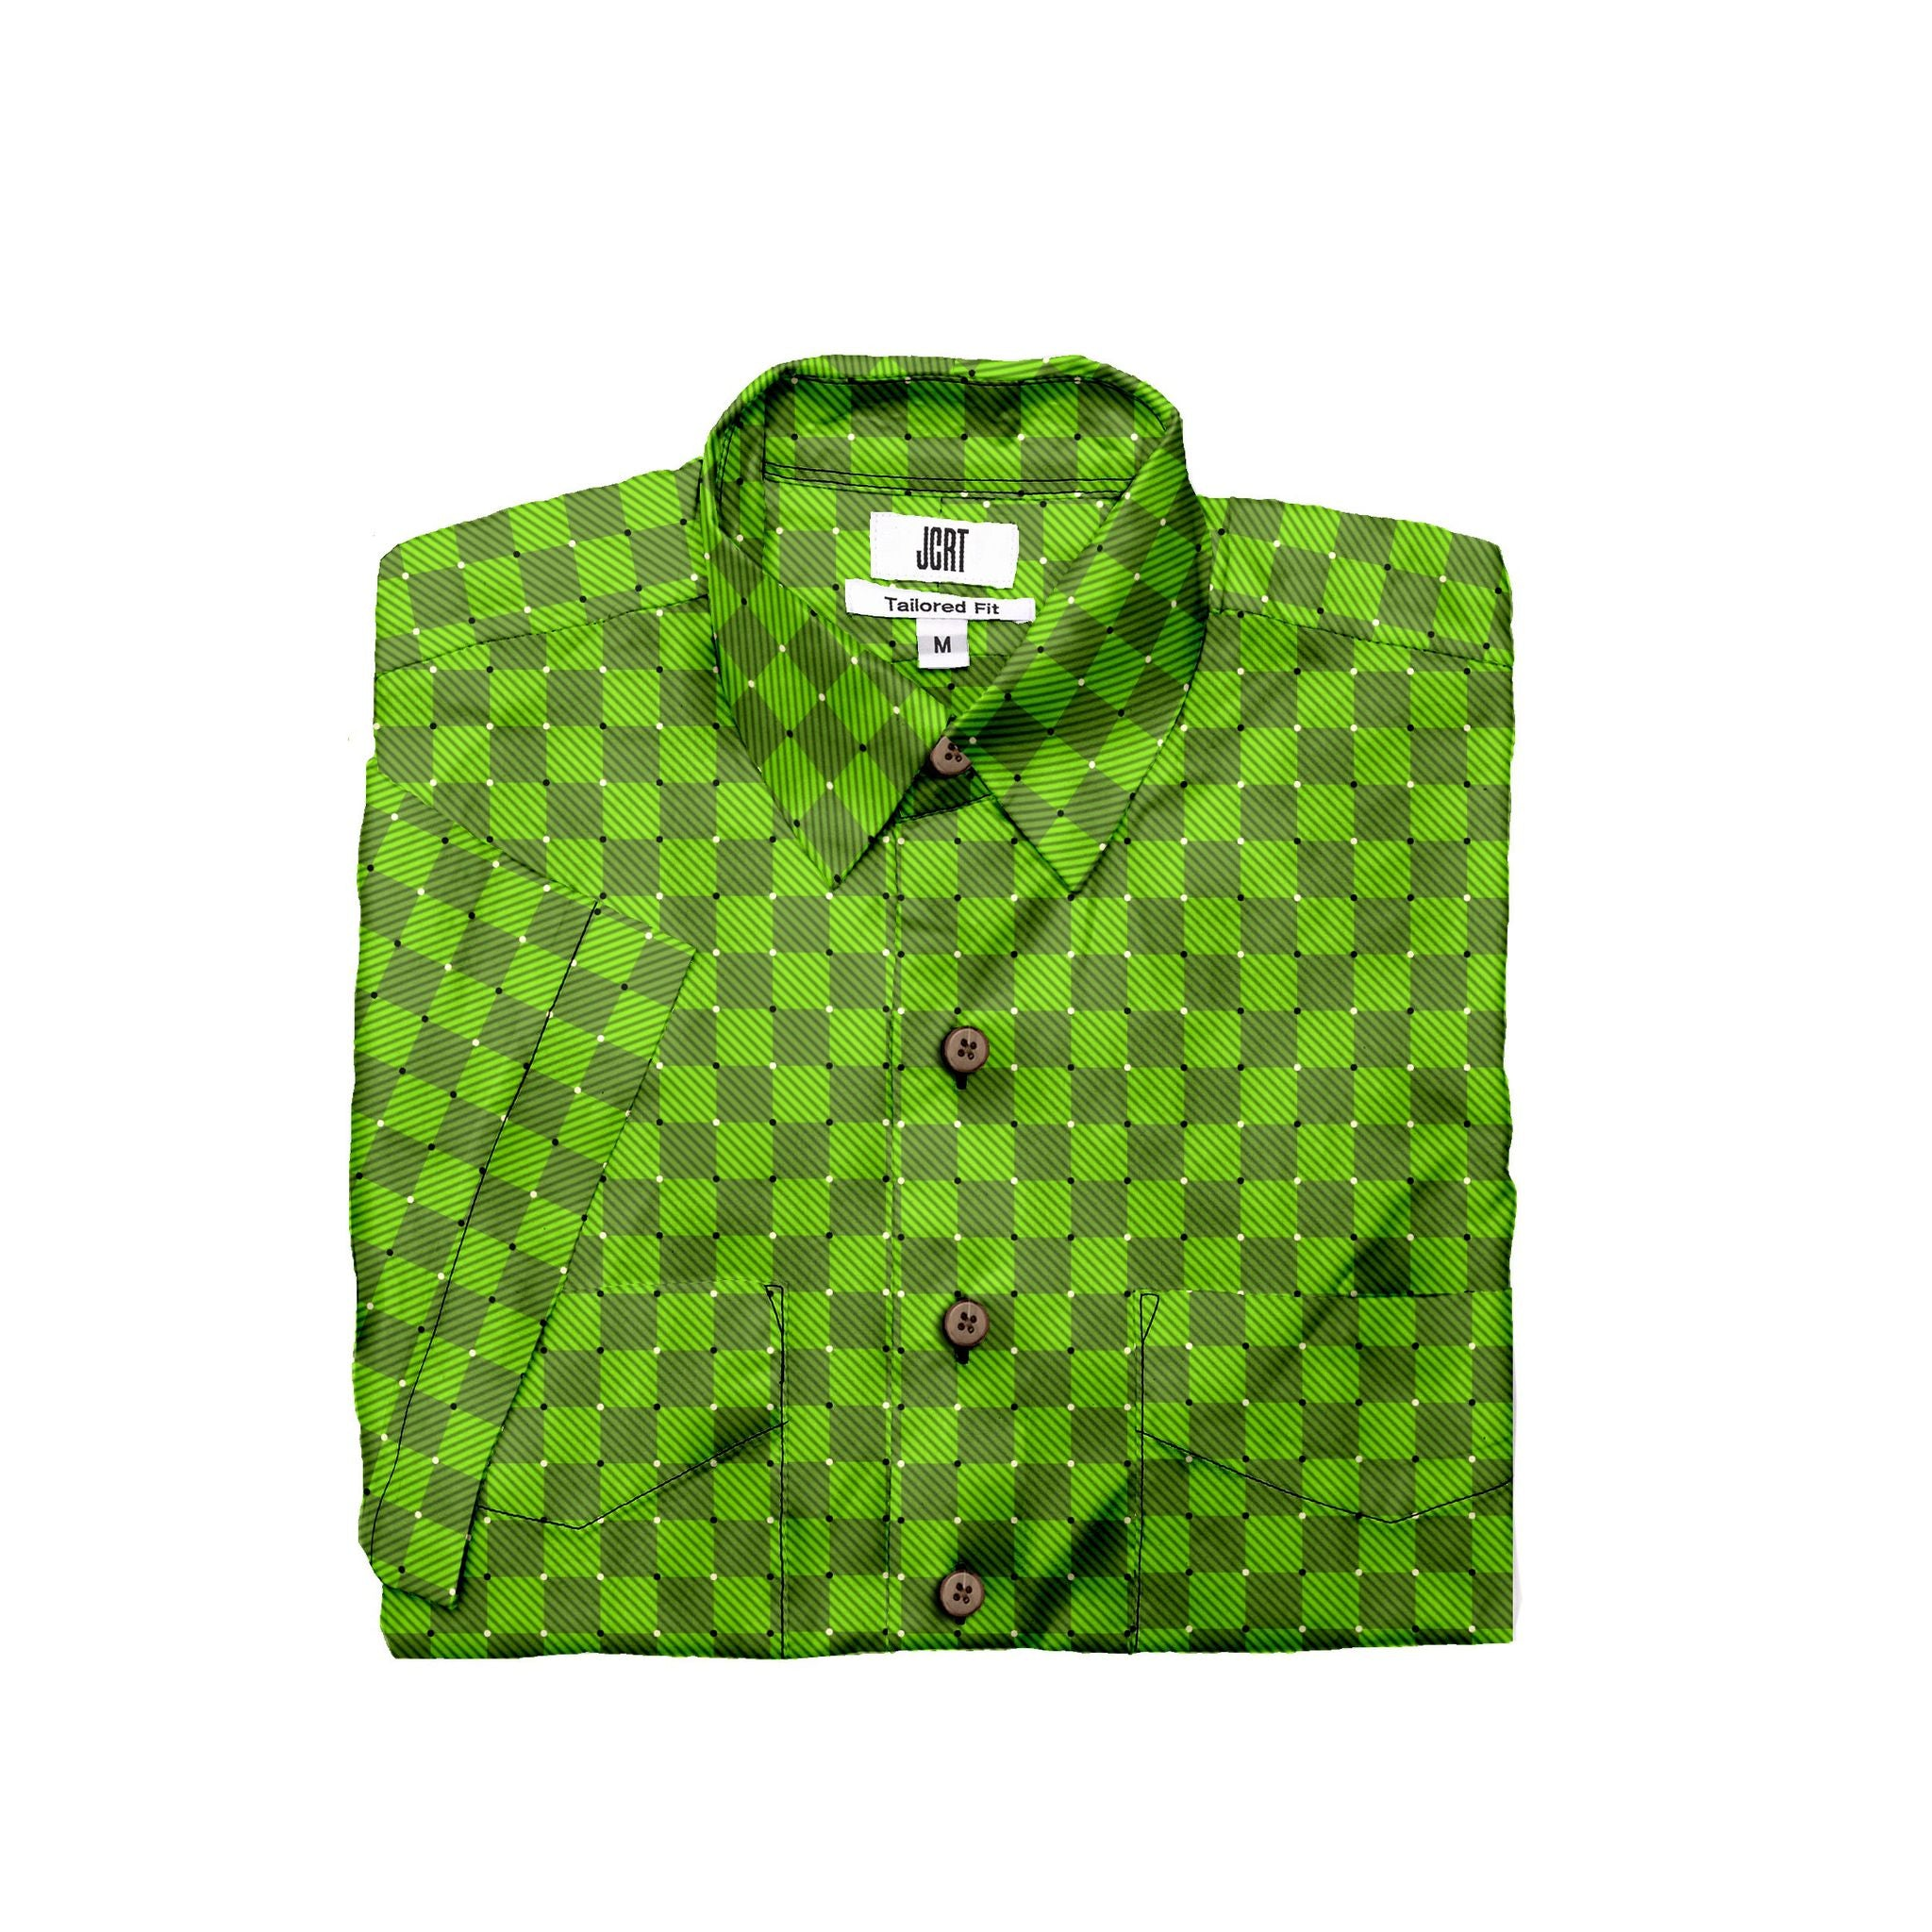 The Groovy Green Check Short Sleeve Shirt